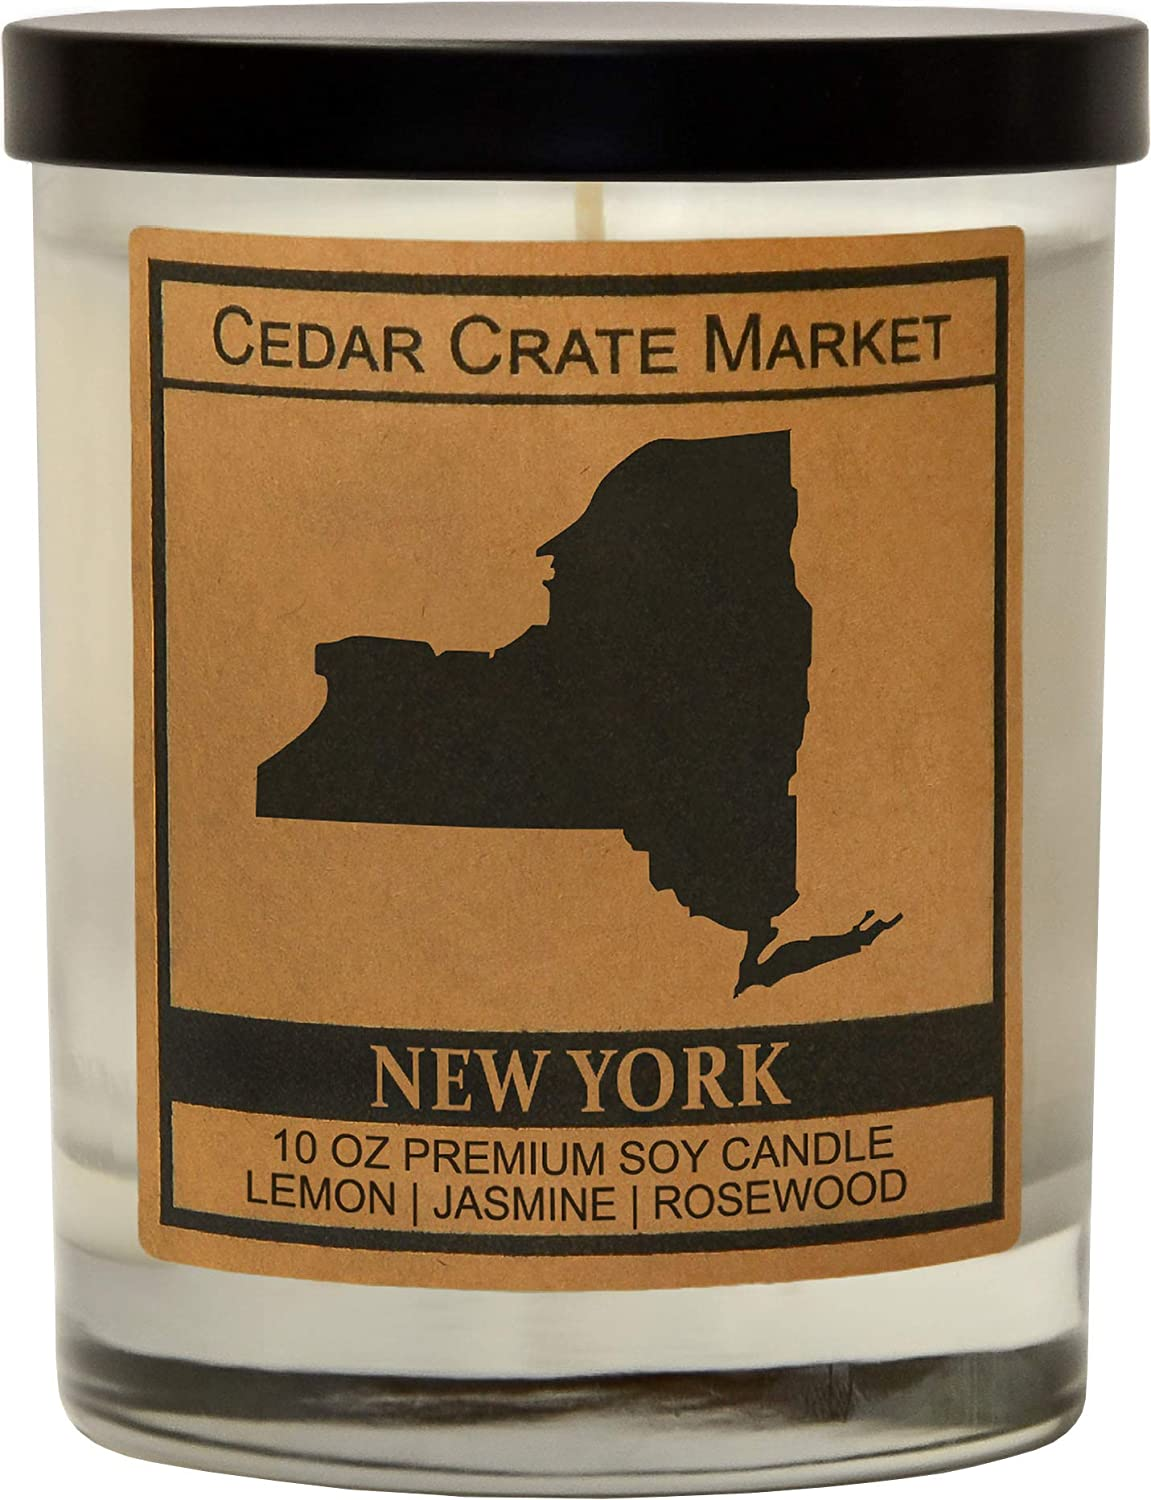 New York Kraft Label Scented Soy Candle, Lemon, Jasmine, Rosewood, 10 Oz. Glass Jar Candle, Made in The USA, Decorative Candles, Going Away Gifts for Friends, State Candles